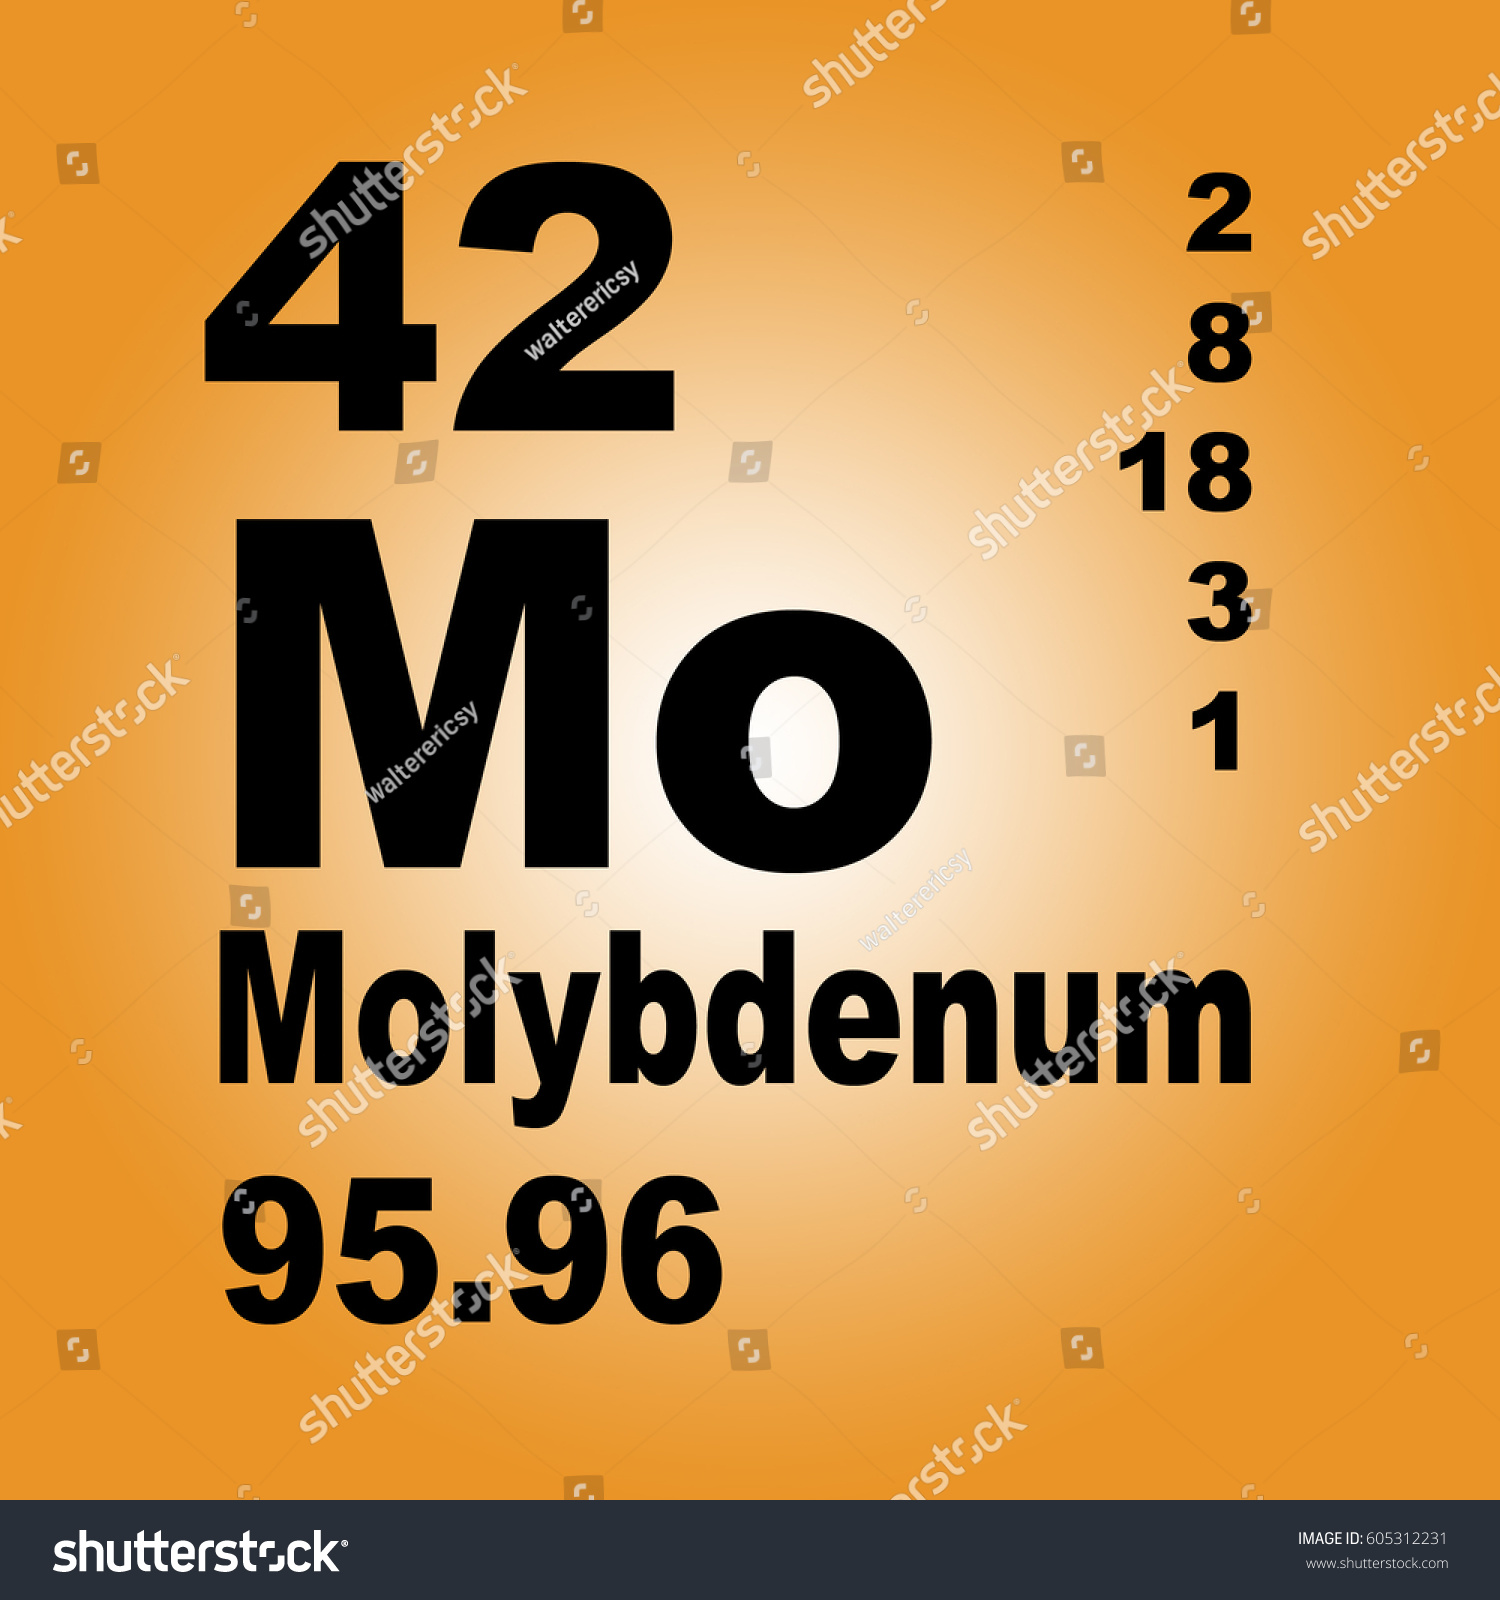 Symbol for ammonia on periodic table gallery periodic table images symbol for ammonia on periodic table image collections periodic symbol for ammonia on periodic table images gamestrikefo Image collections